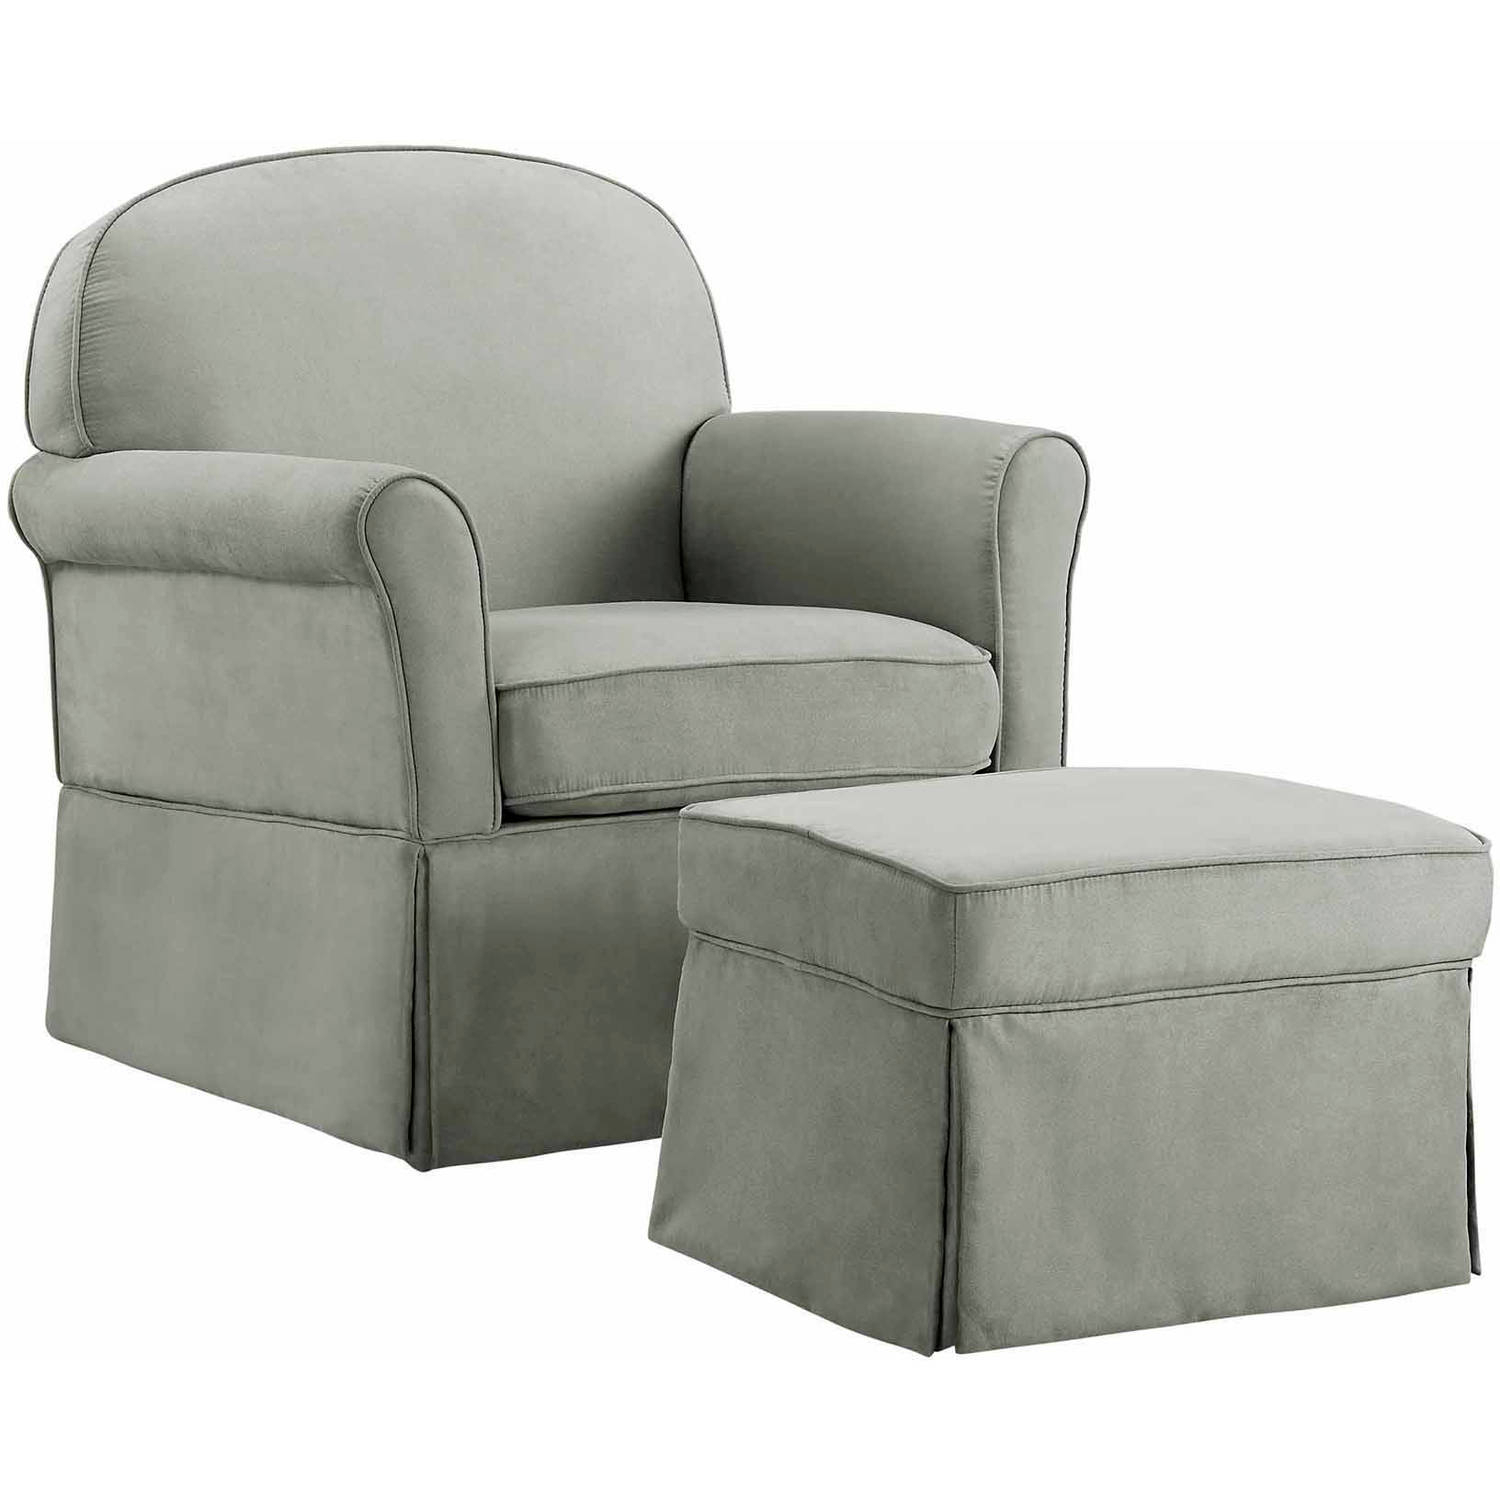 Baby Relax Evan Swivel Glider And Ottoman Gray – Walmart For Dark Grey Swivel Chairs (View 18 of 25)